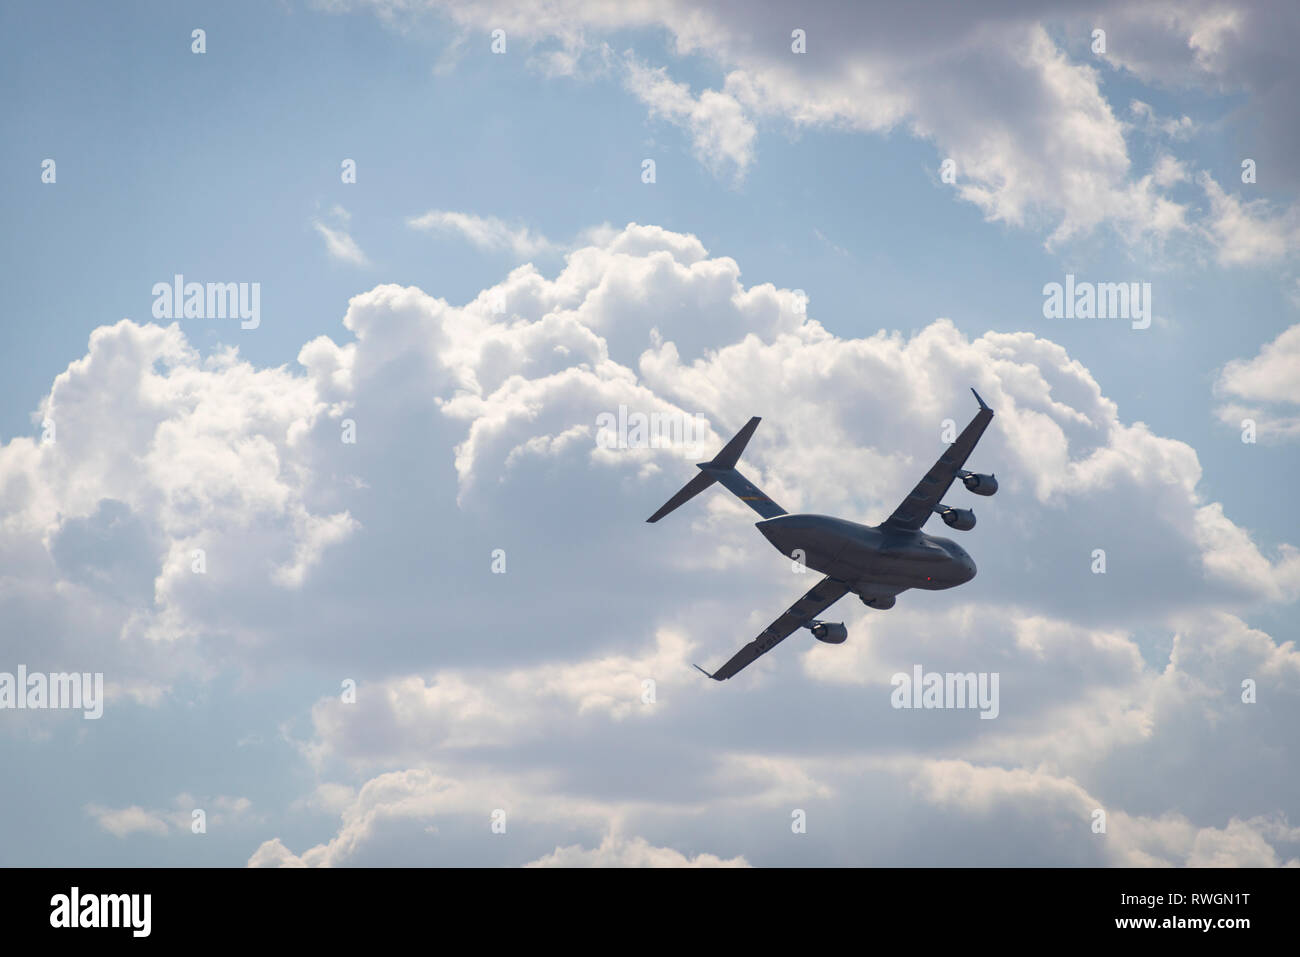 A Boeing C-17 Globemaster III in flight, banking against a cloudy sky - Stock Image